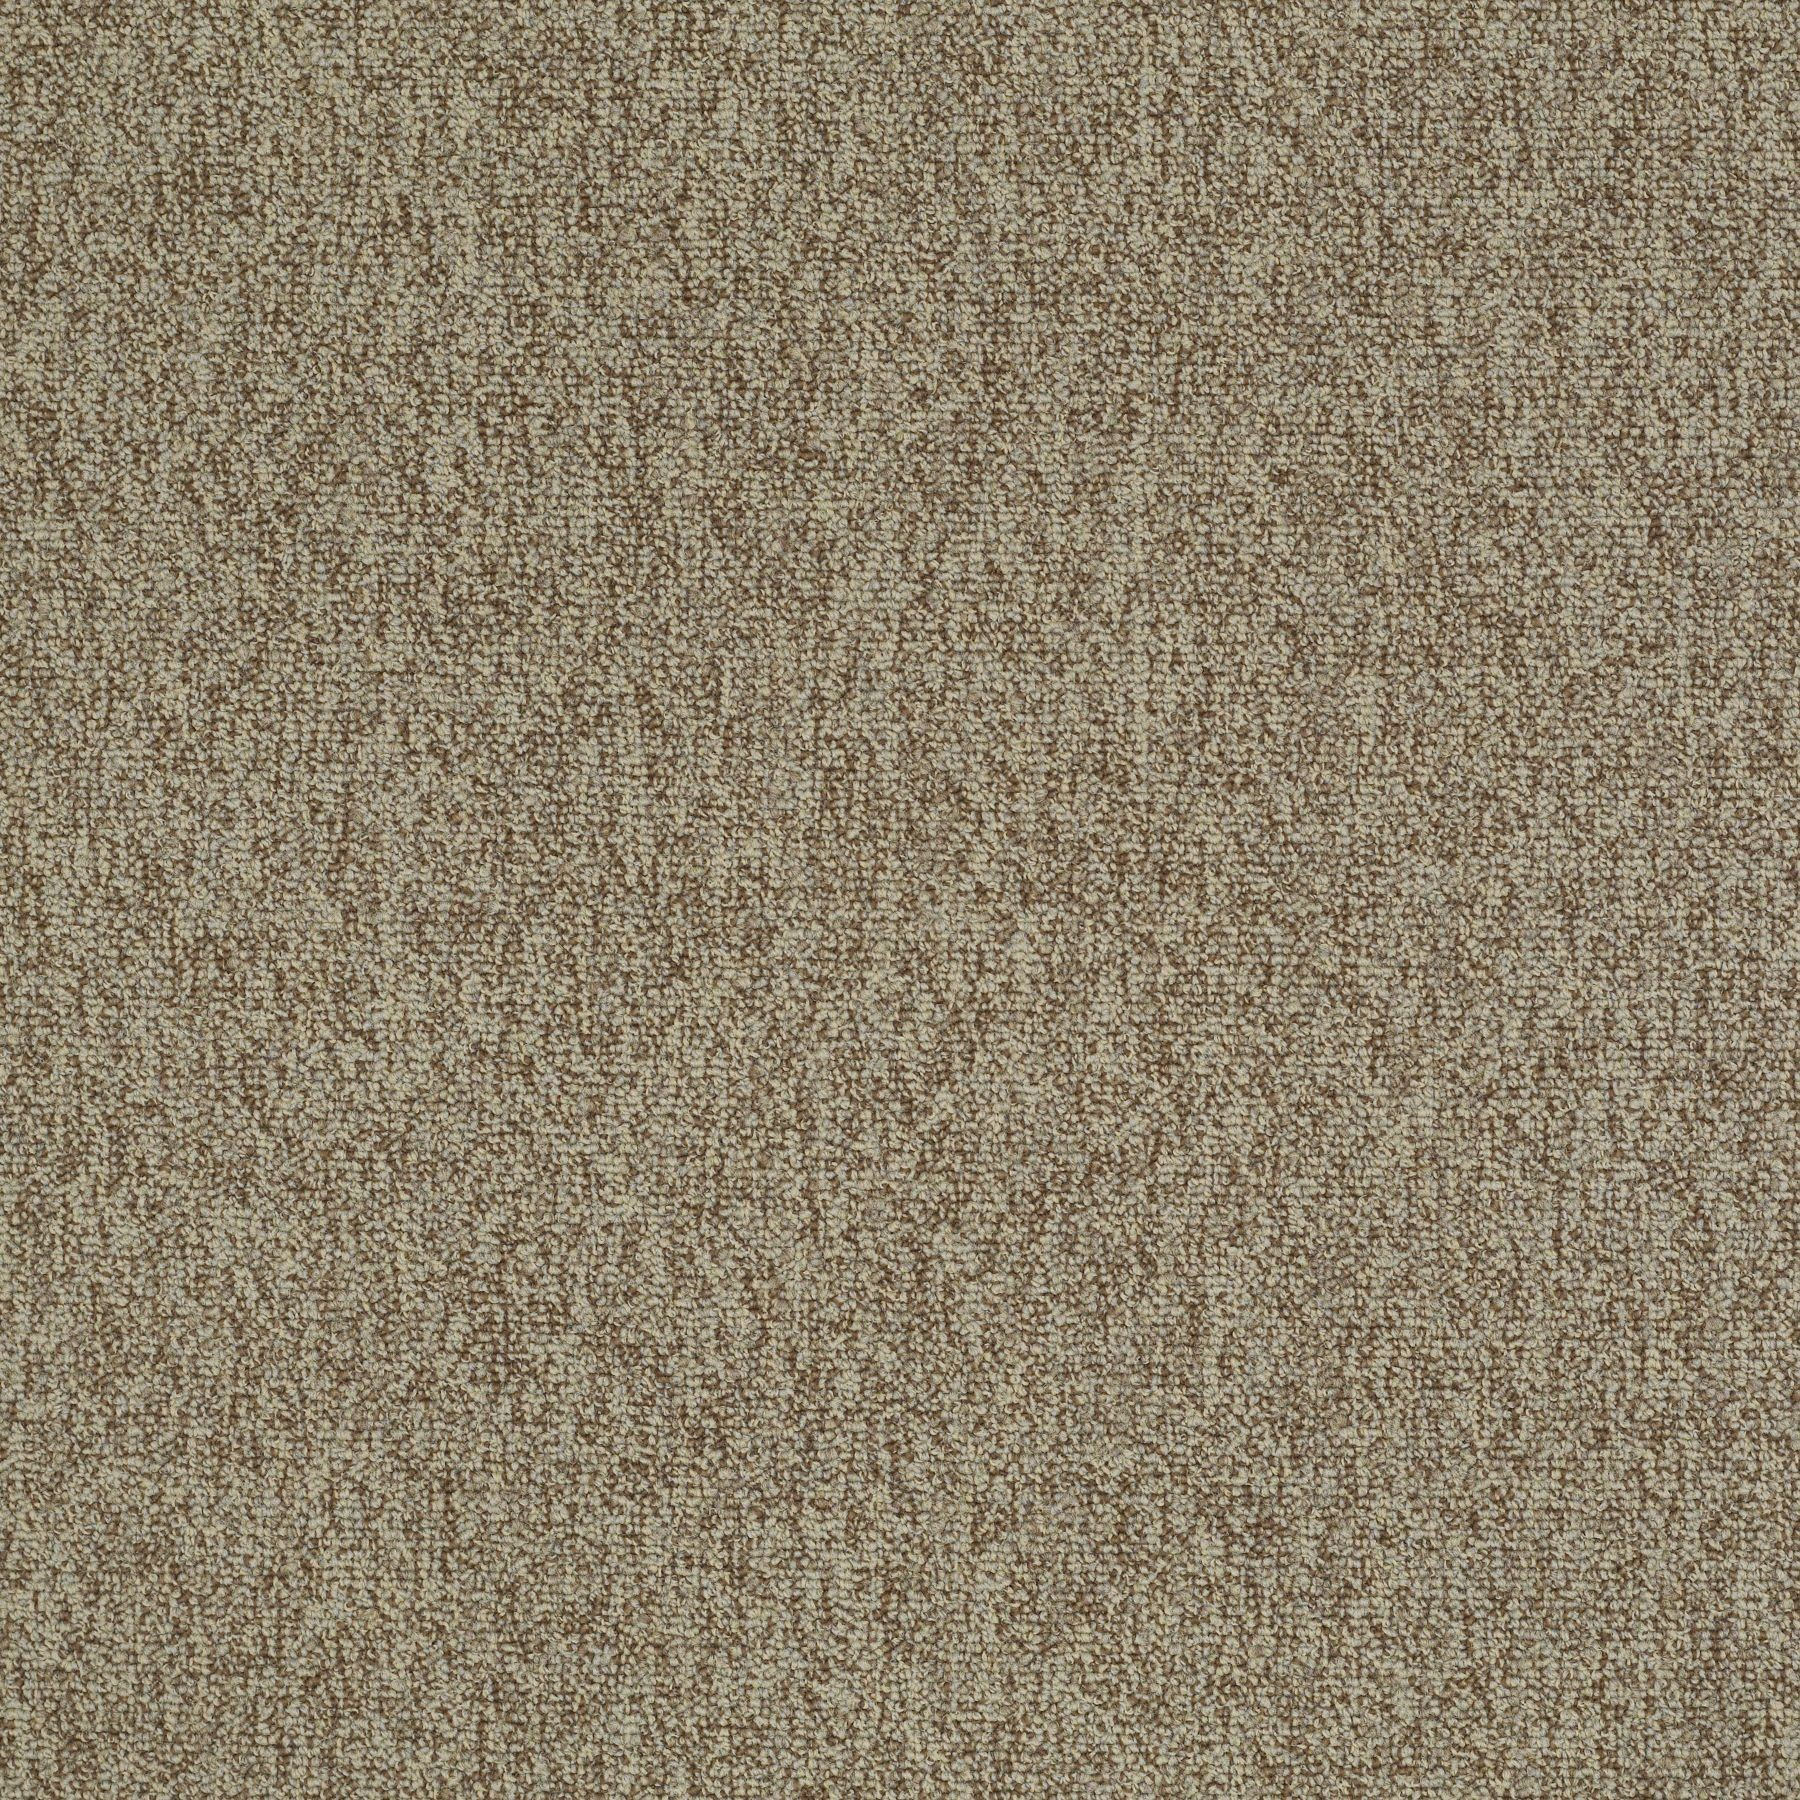 Multiplicity Tile 54594 Color 00105 Carpet Tile